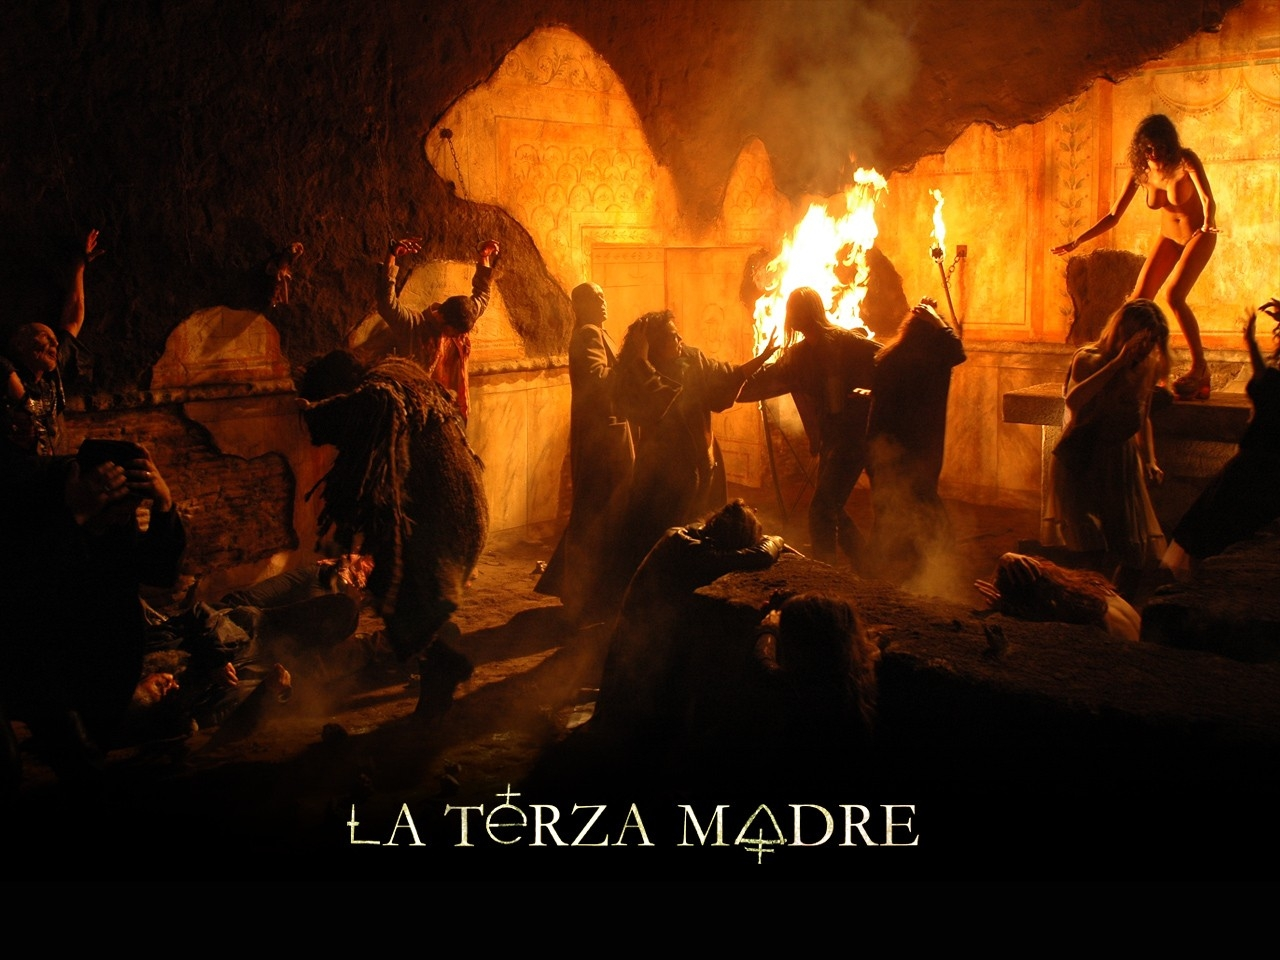 Wallpaper del film La terza madre